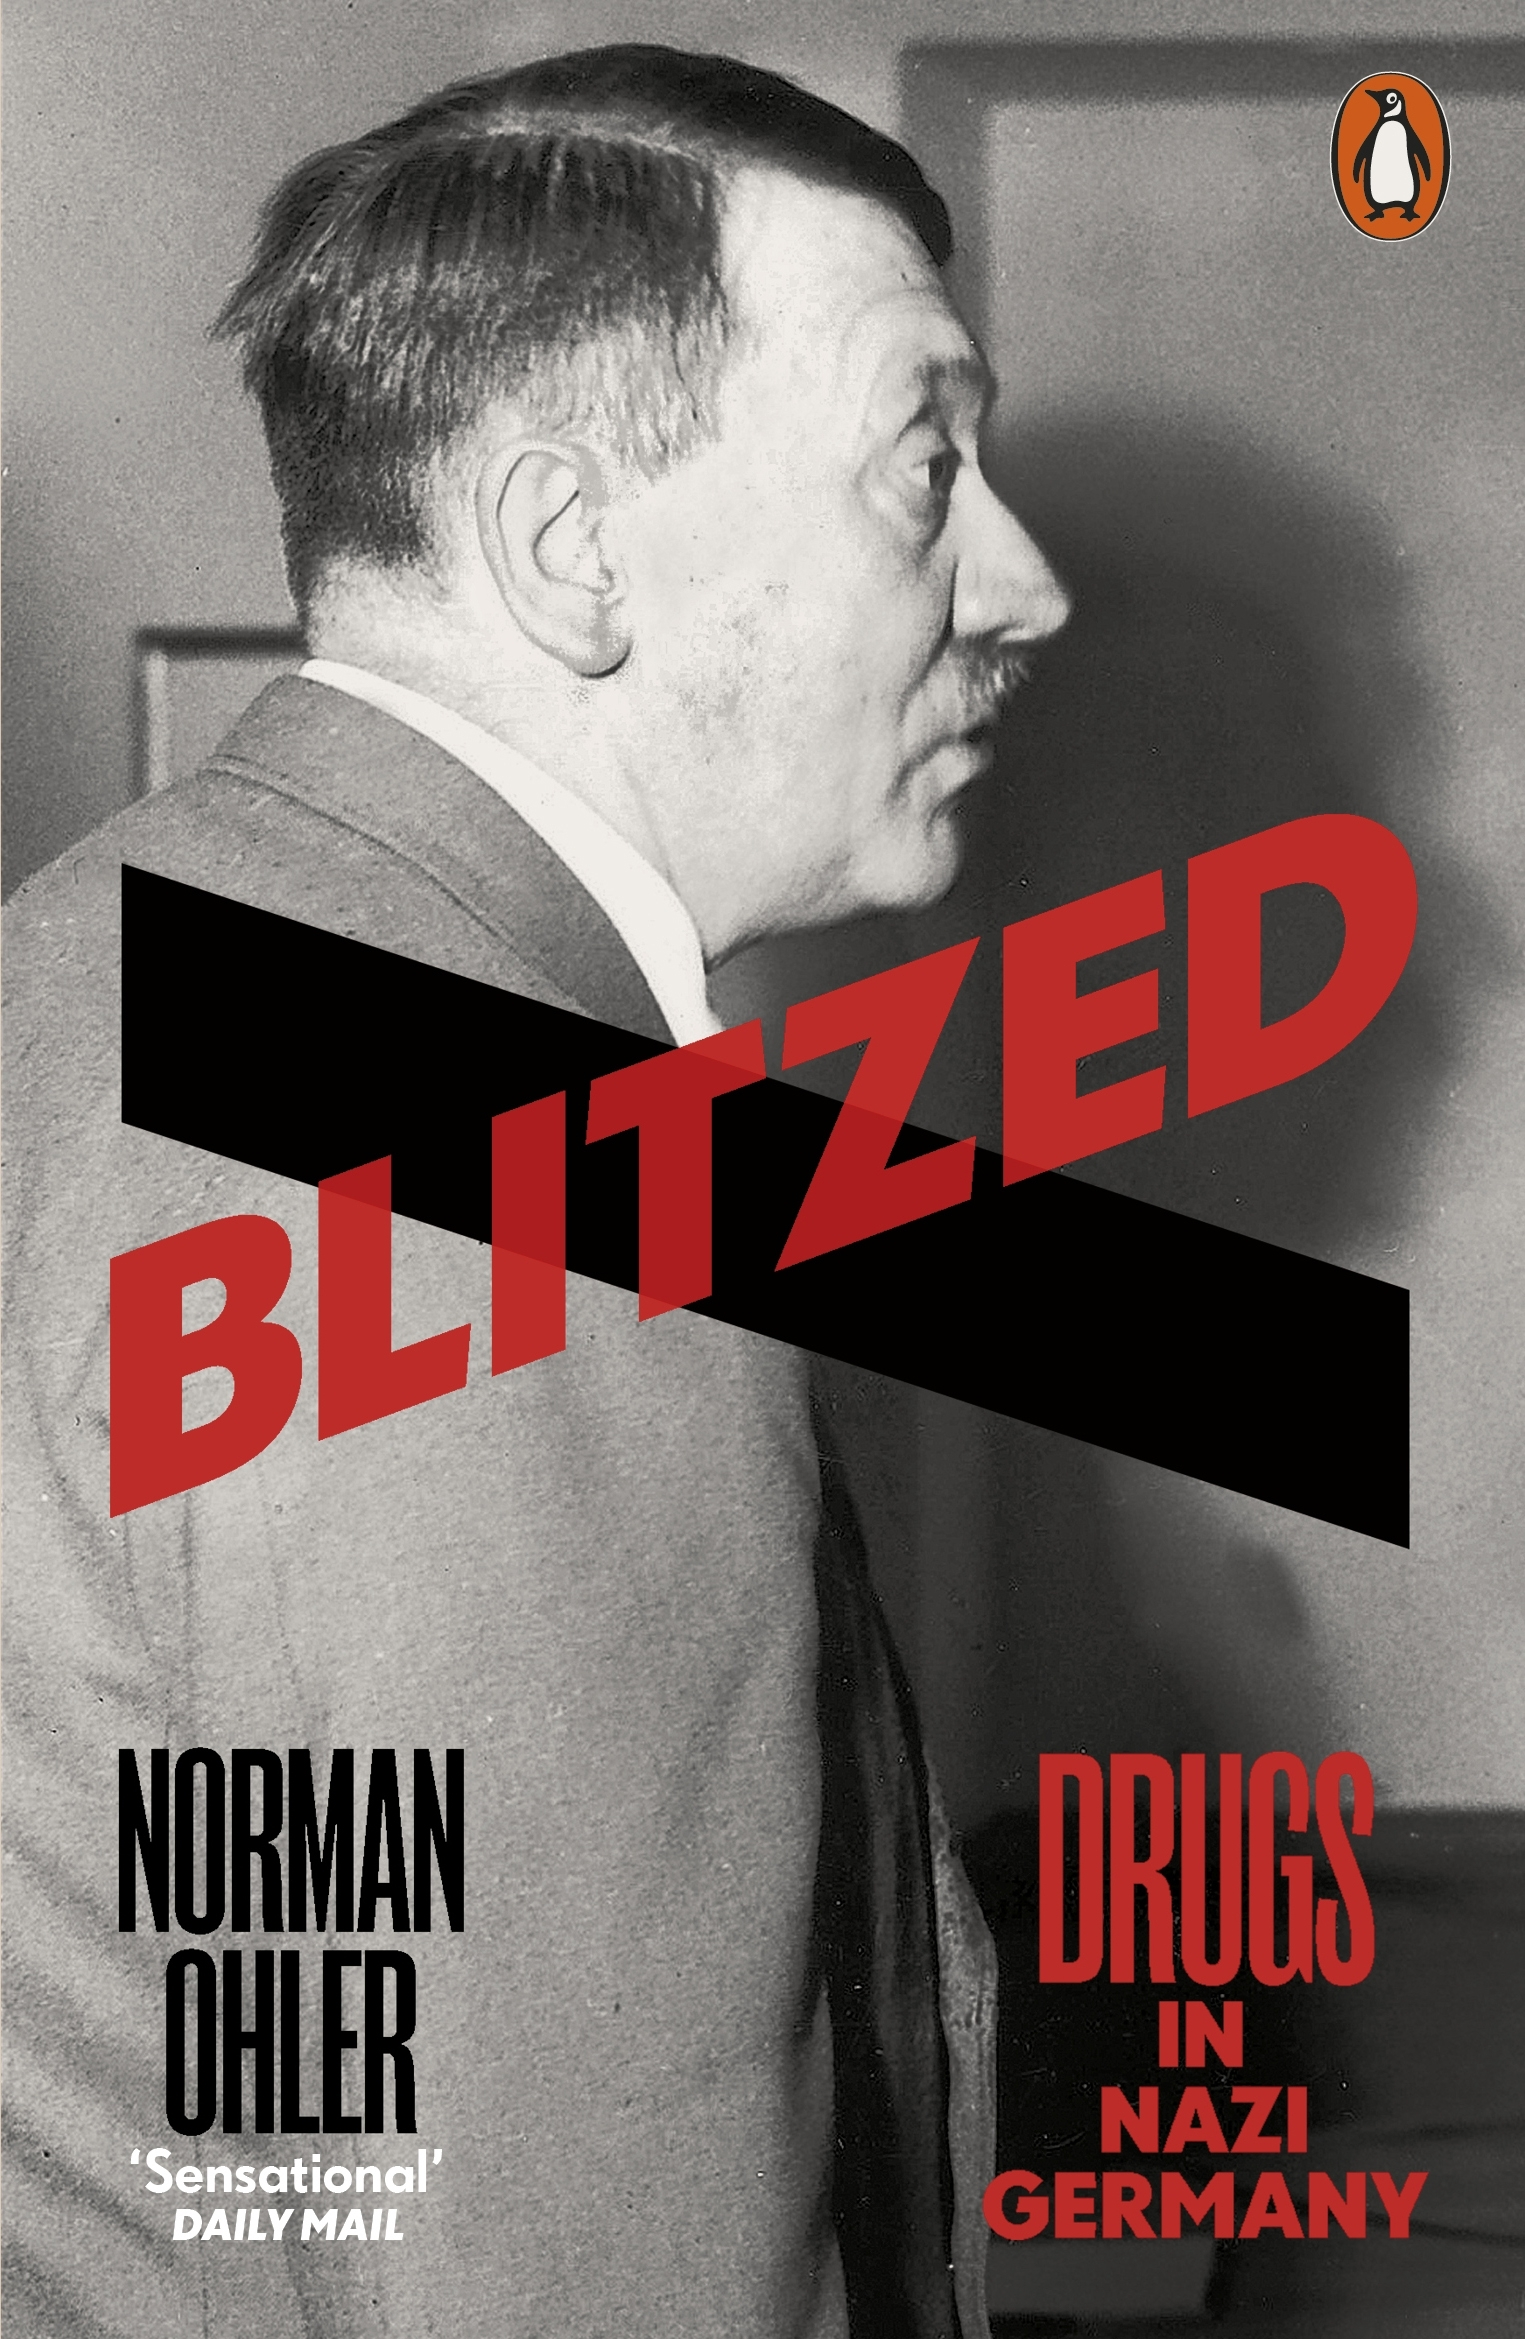 Blitzed: Drugs in the Third Reich by Norman Ohler, ISBN: 9780141983165